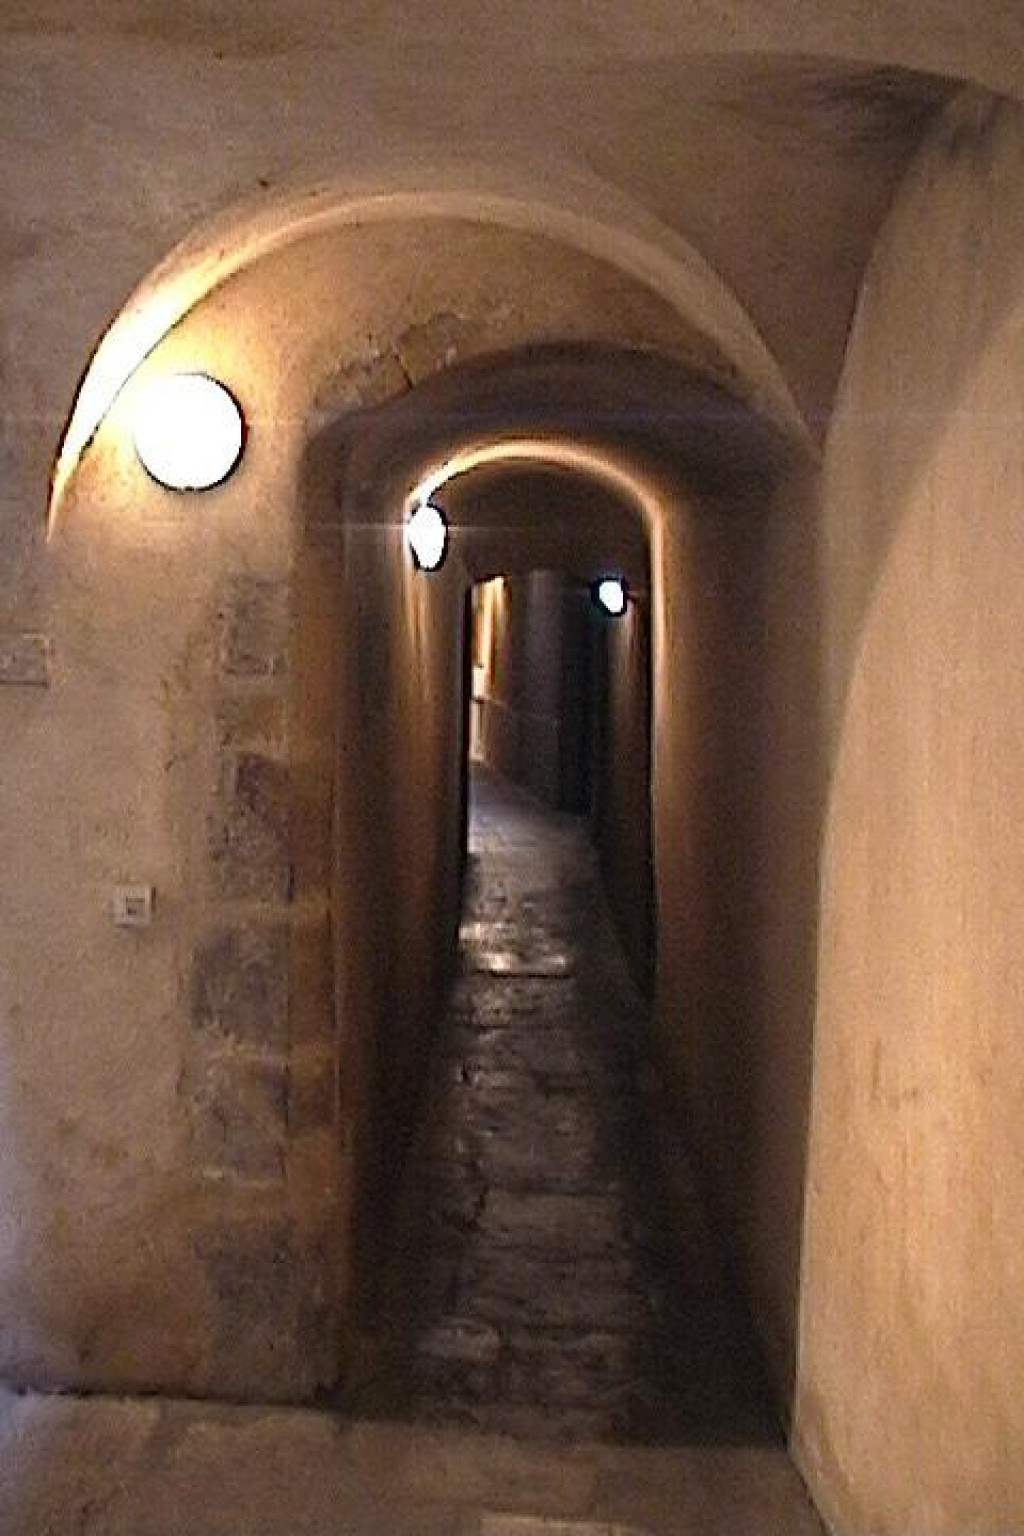 In WWII these passageways were used by the Resistance fighters (apparently the Germans didn't know about them - which just highlights the importance of buying a good guidebook - thanks, Let's Go!).